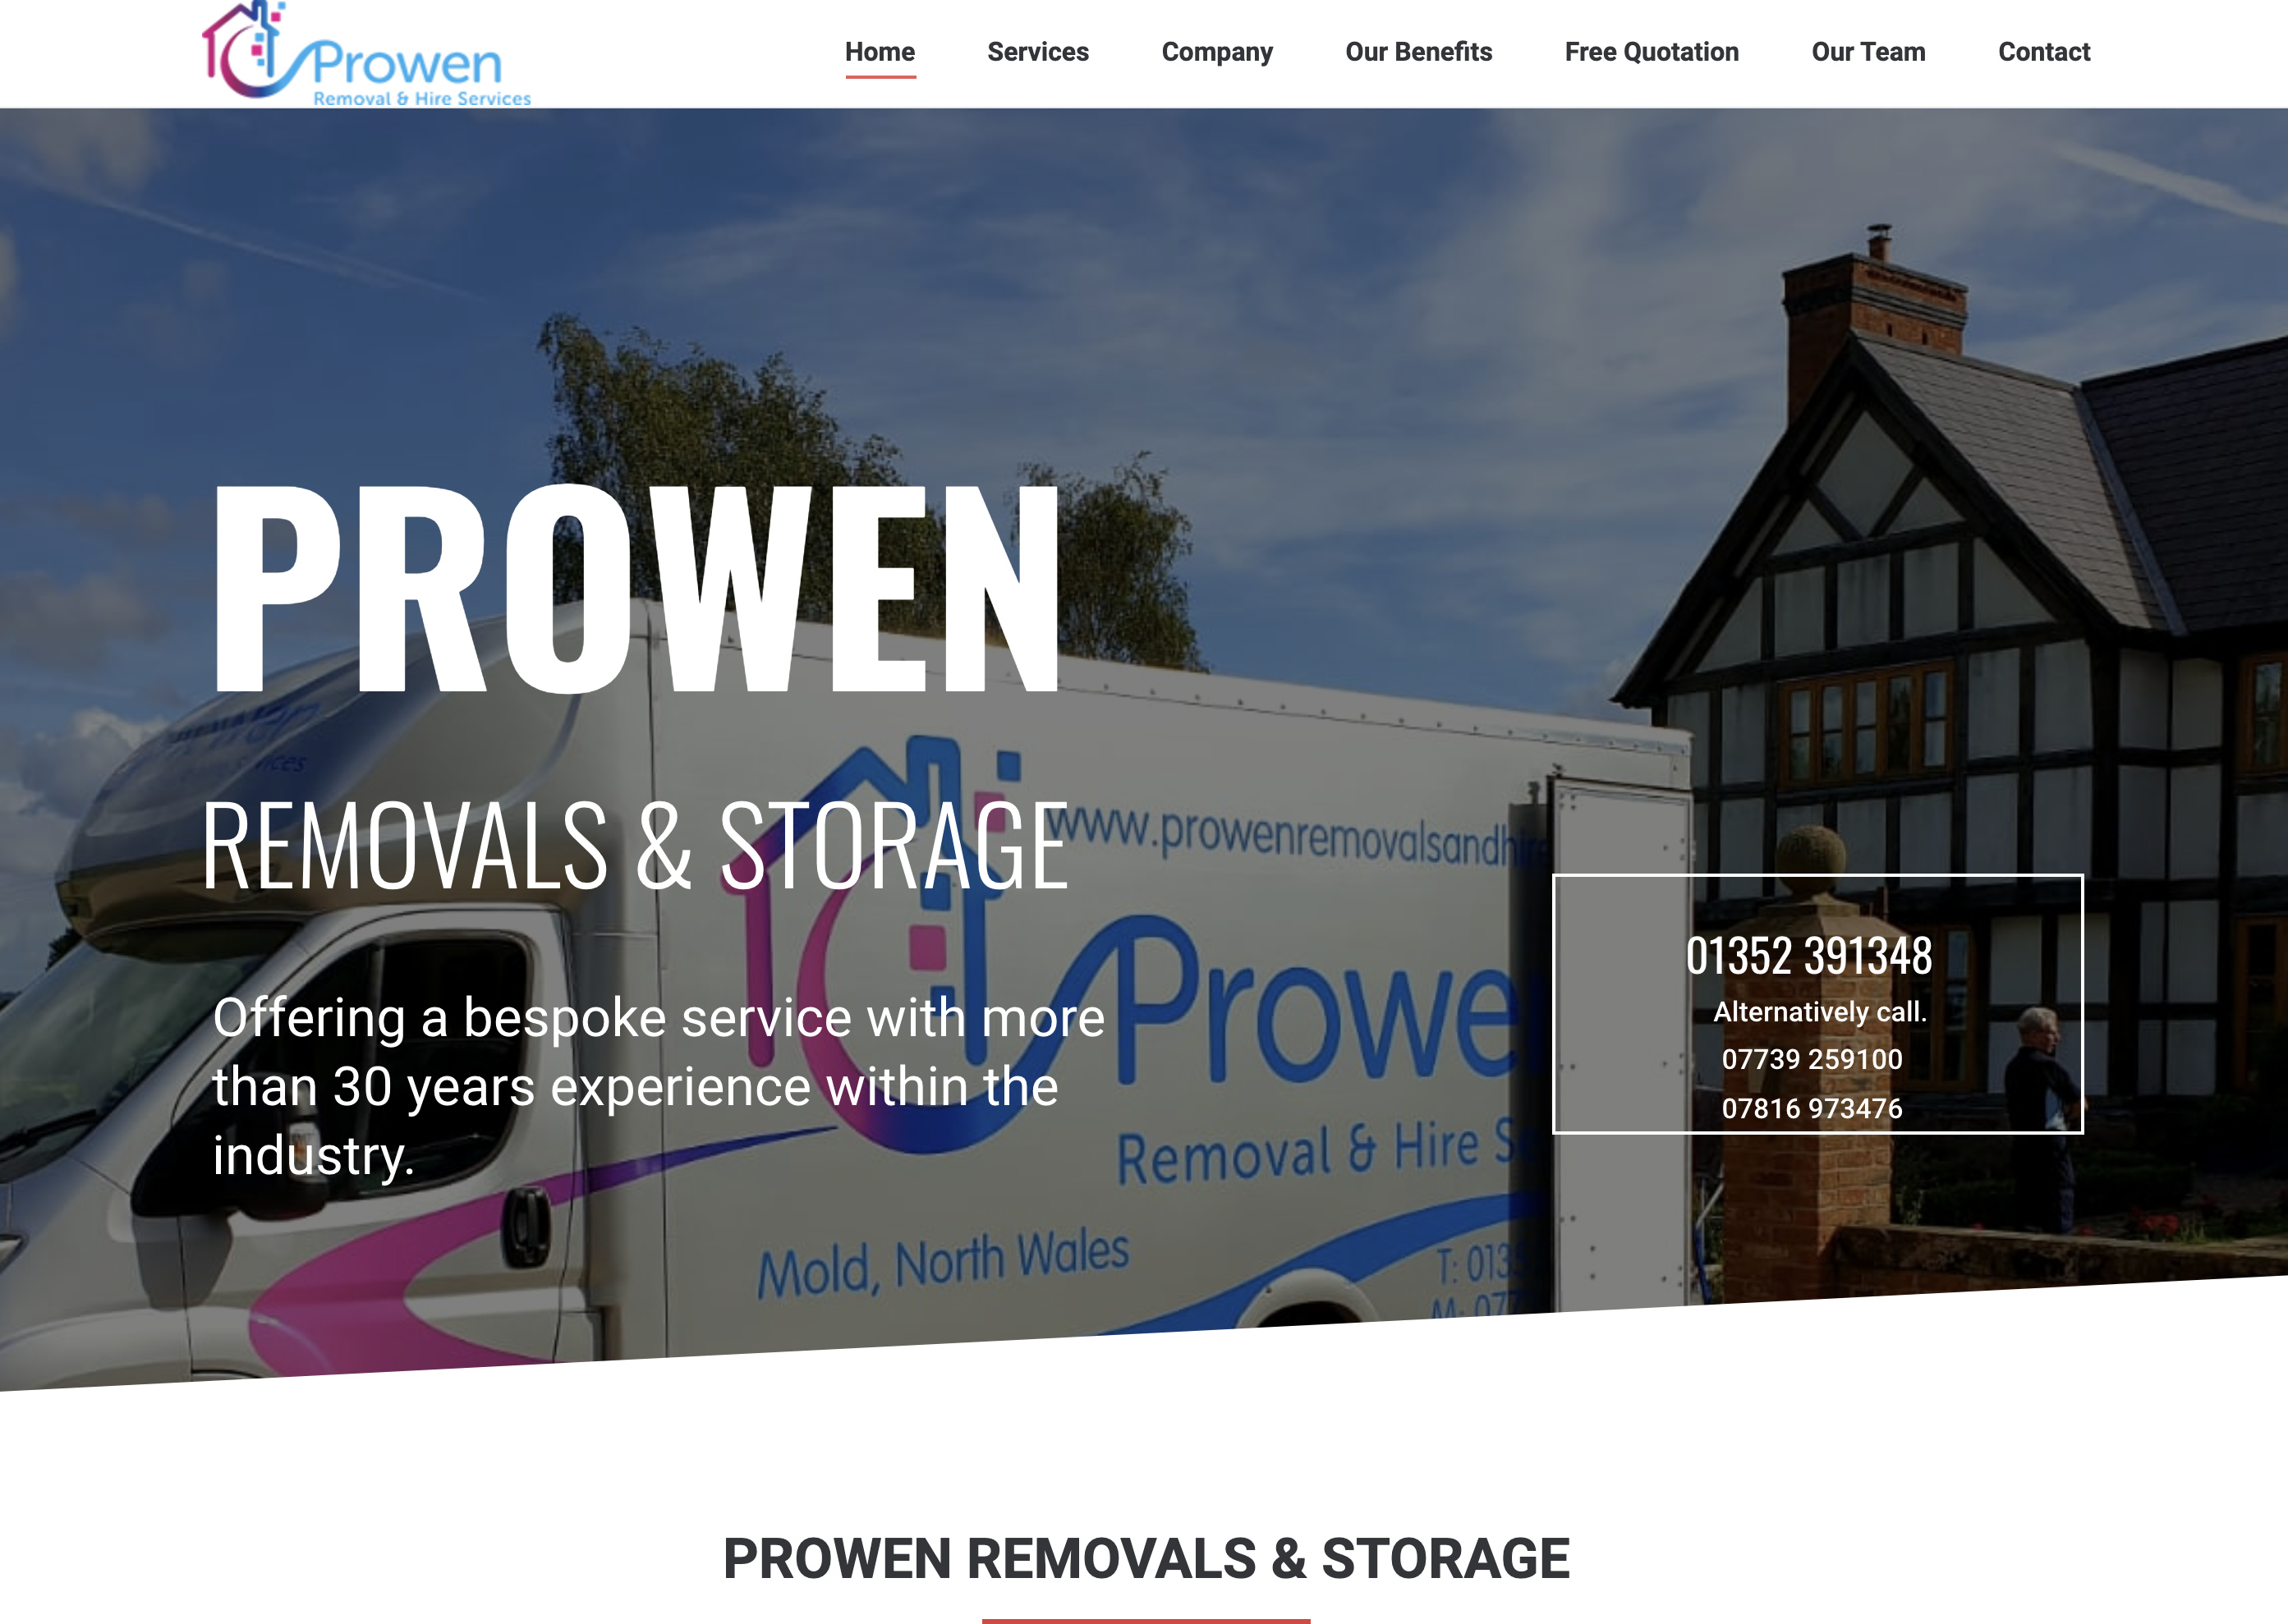 Prowen Removals built by Thedm Ltd